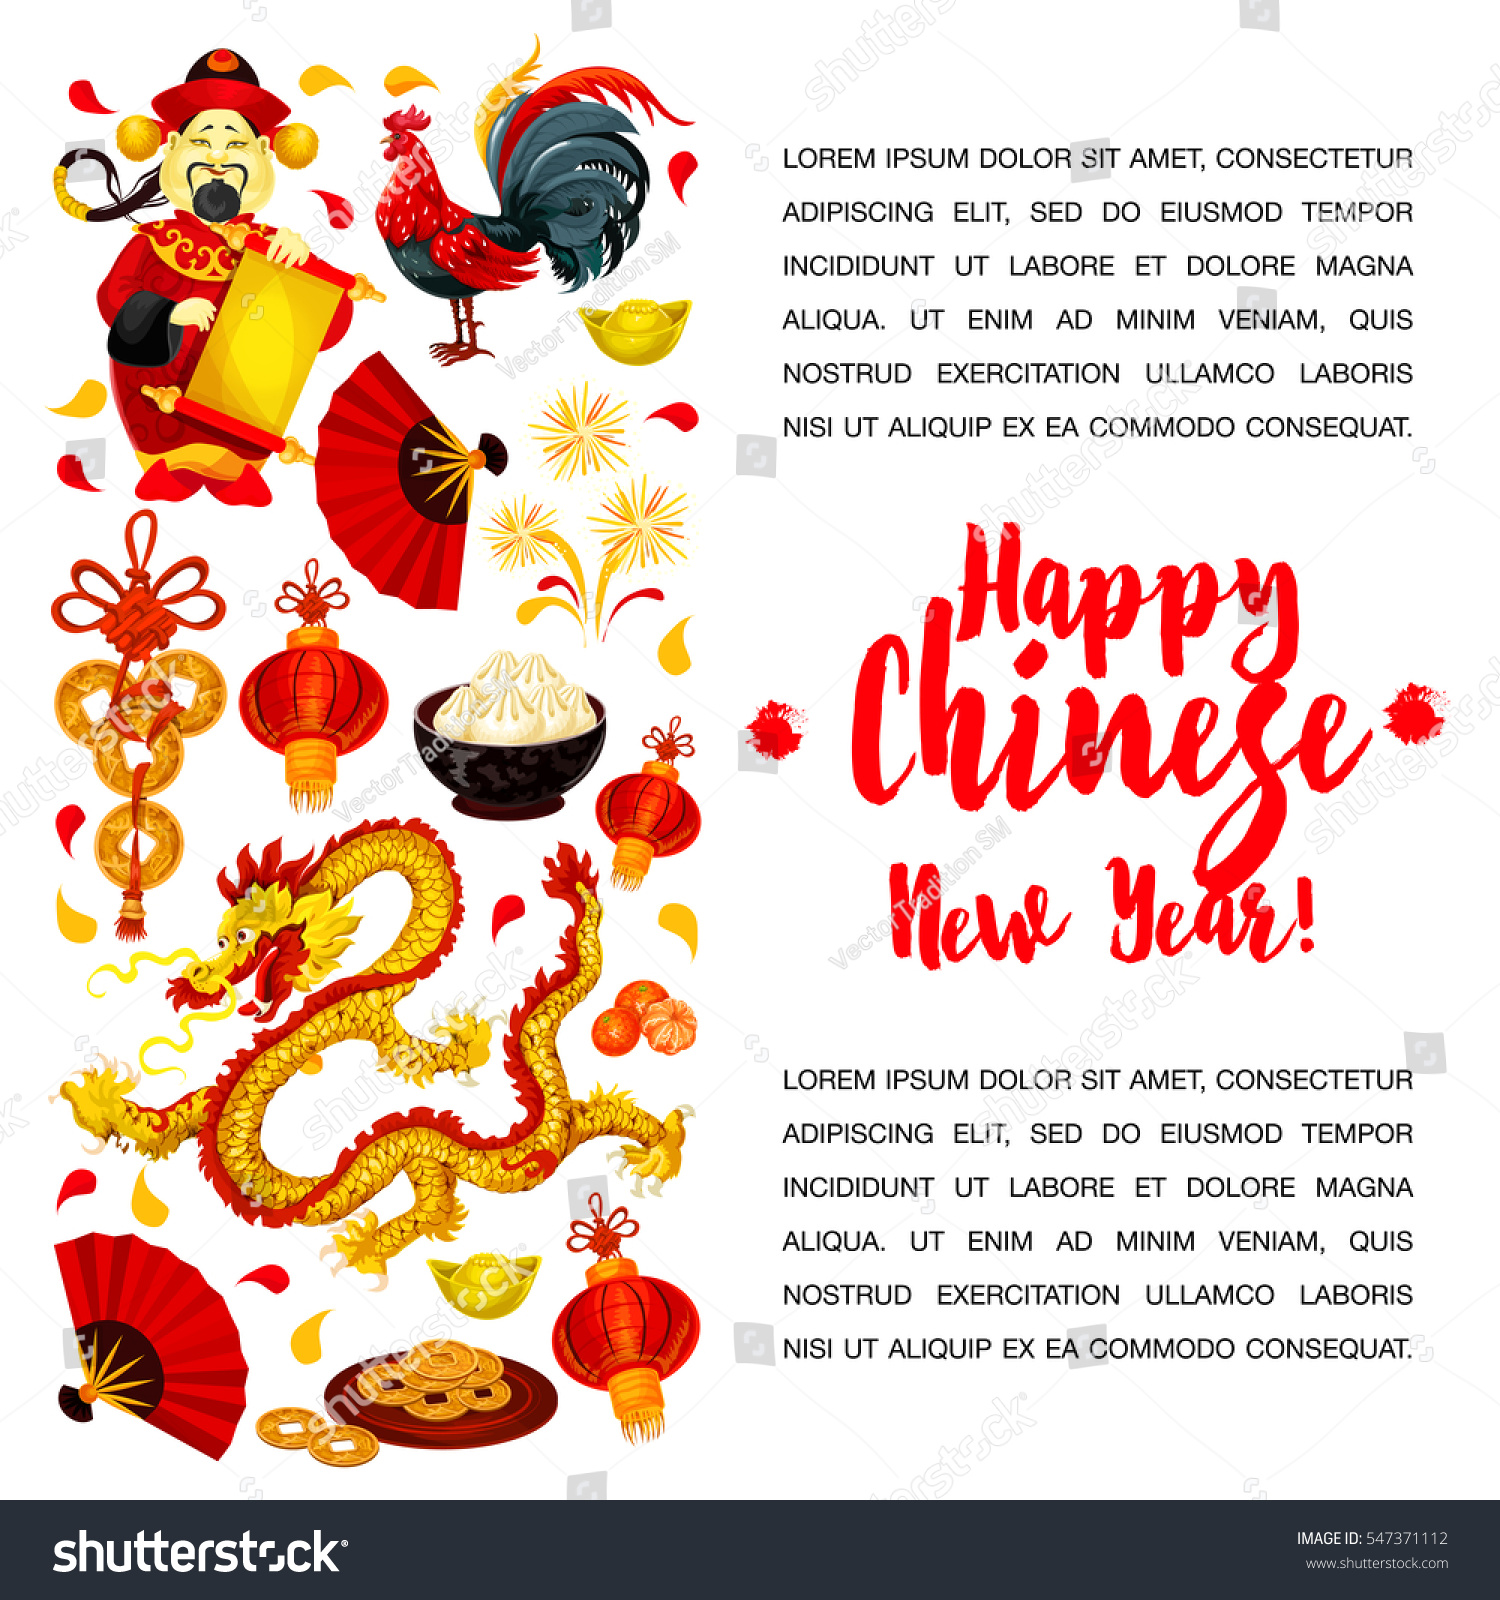 how to write happy chinese new year in mandarin